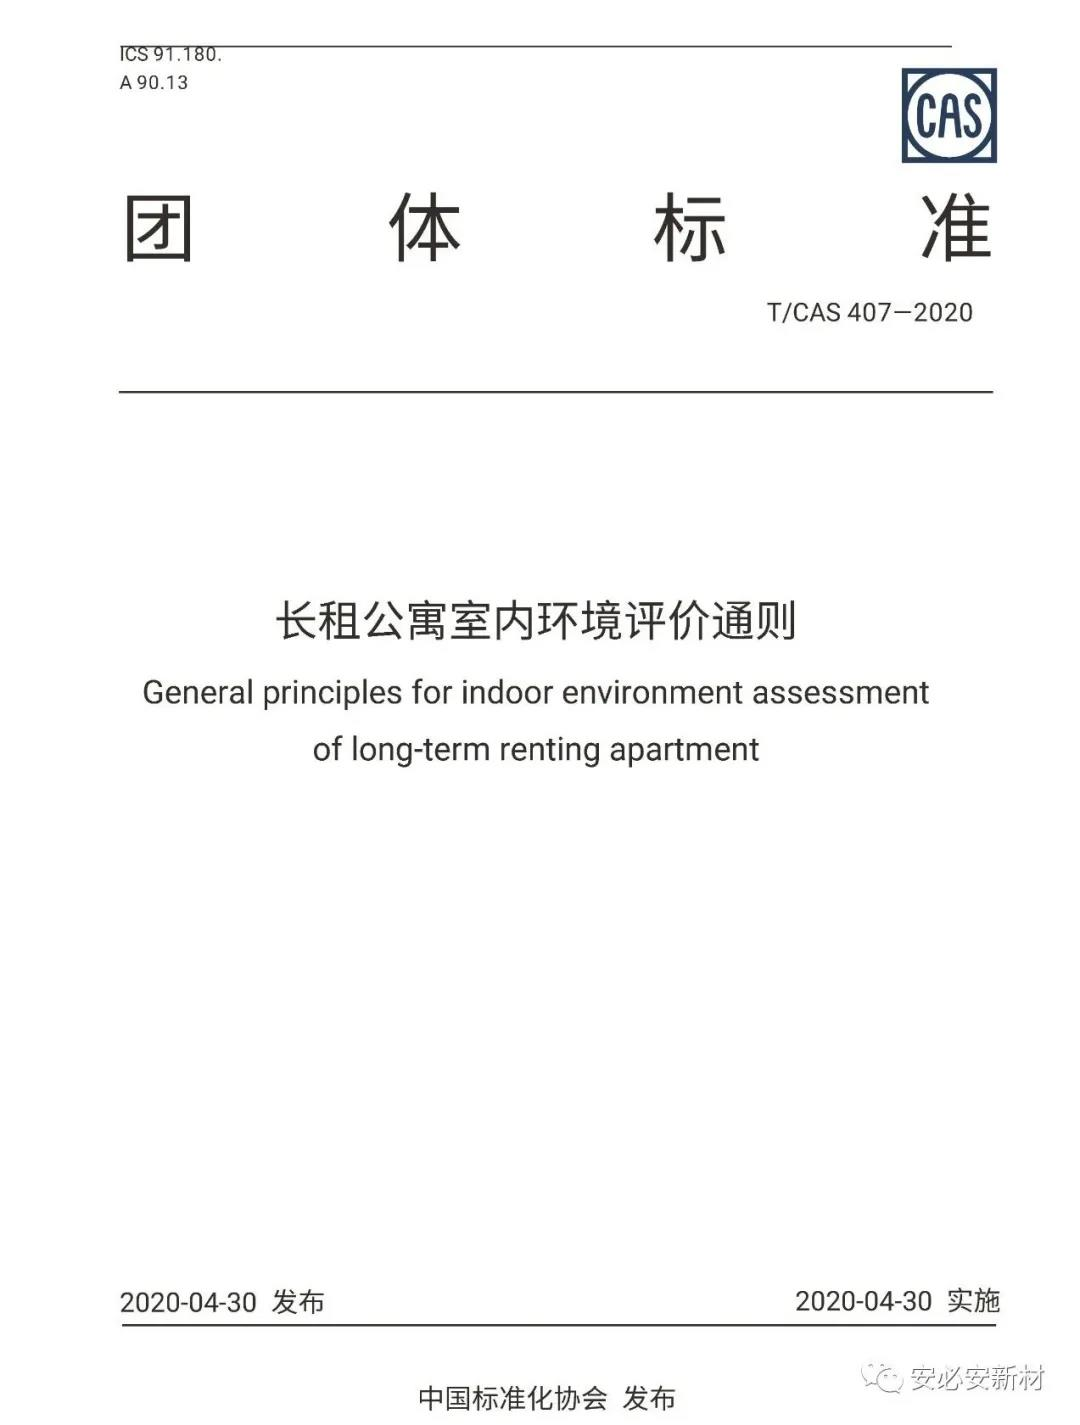 DANSN Participants in General Principles for Indoor Environment Assessment of Long-Term Renting Apartment Issued Formally